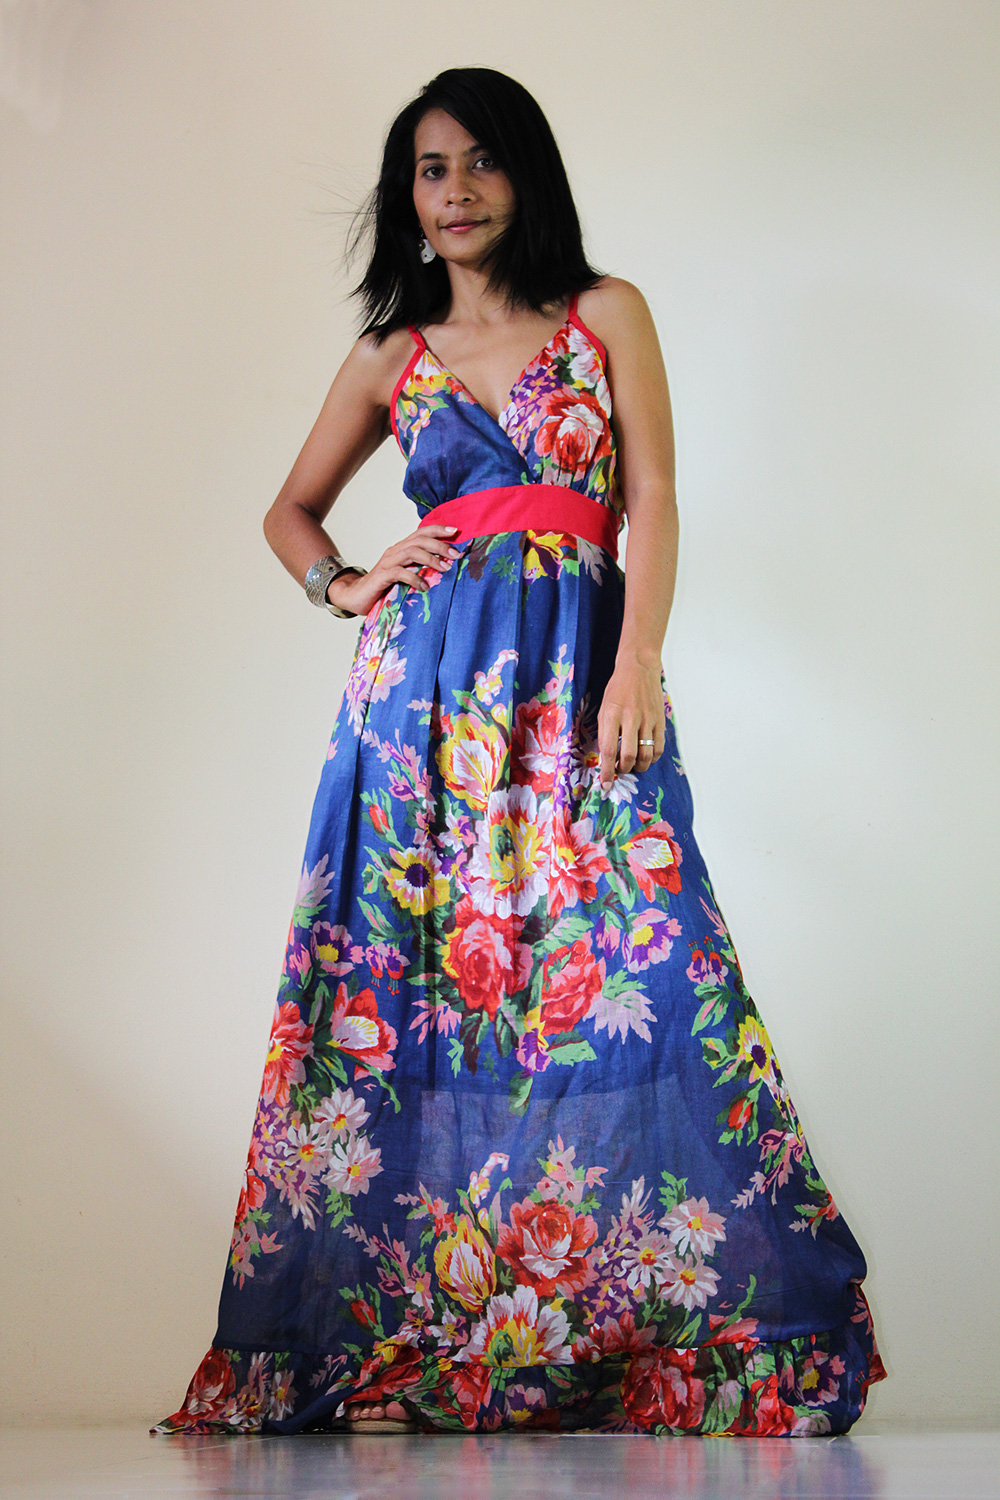 Floral Maxi Dress Blue Summer Cotton Cute V Neck : Sweetie Vintage ...